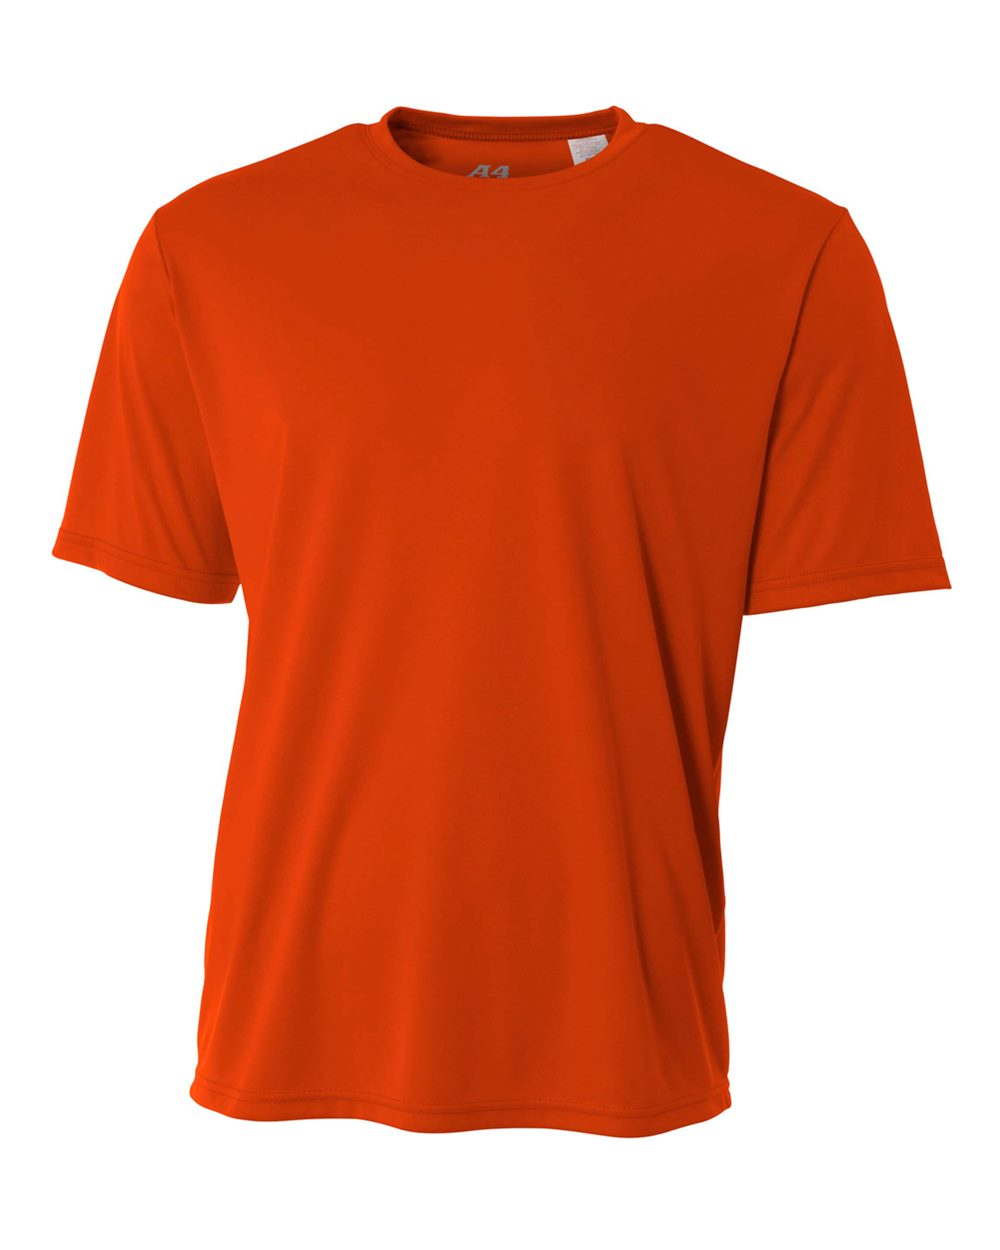 mw-polo-athletic-orange.jpg